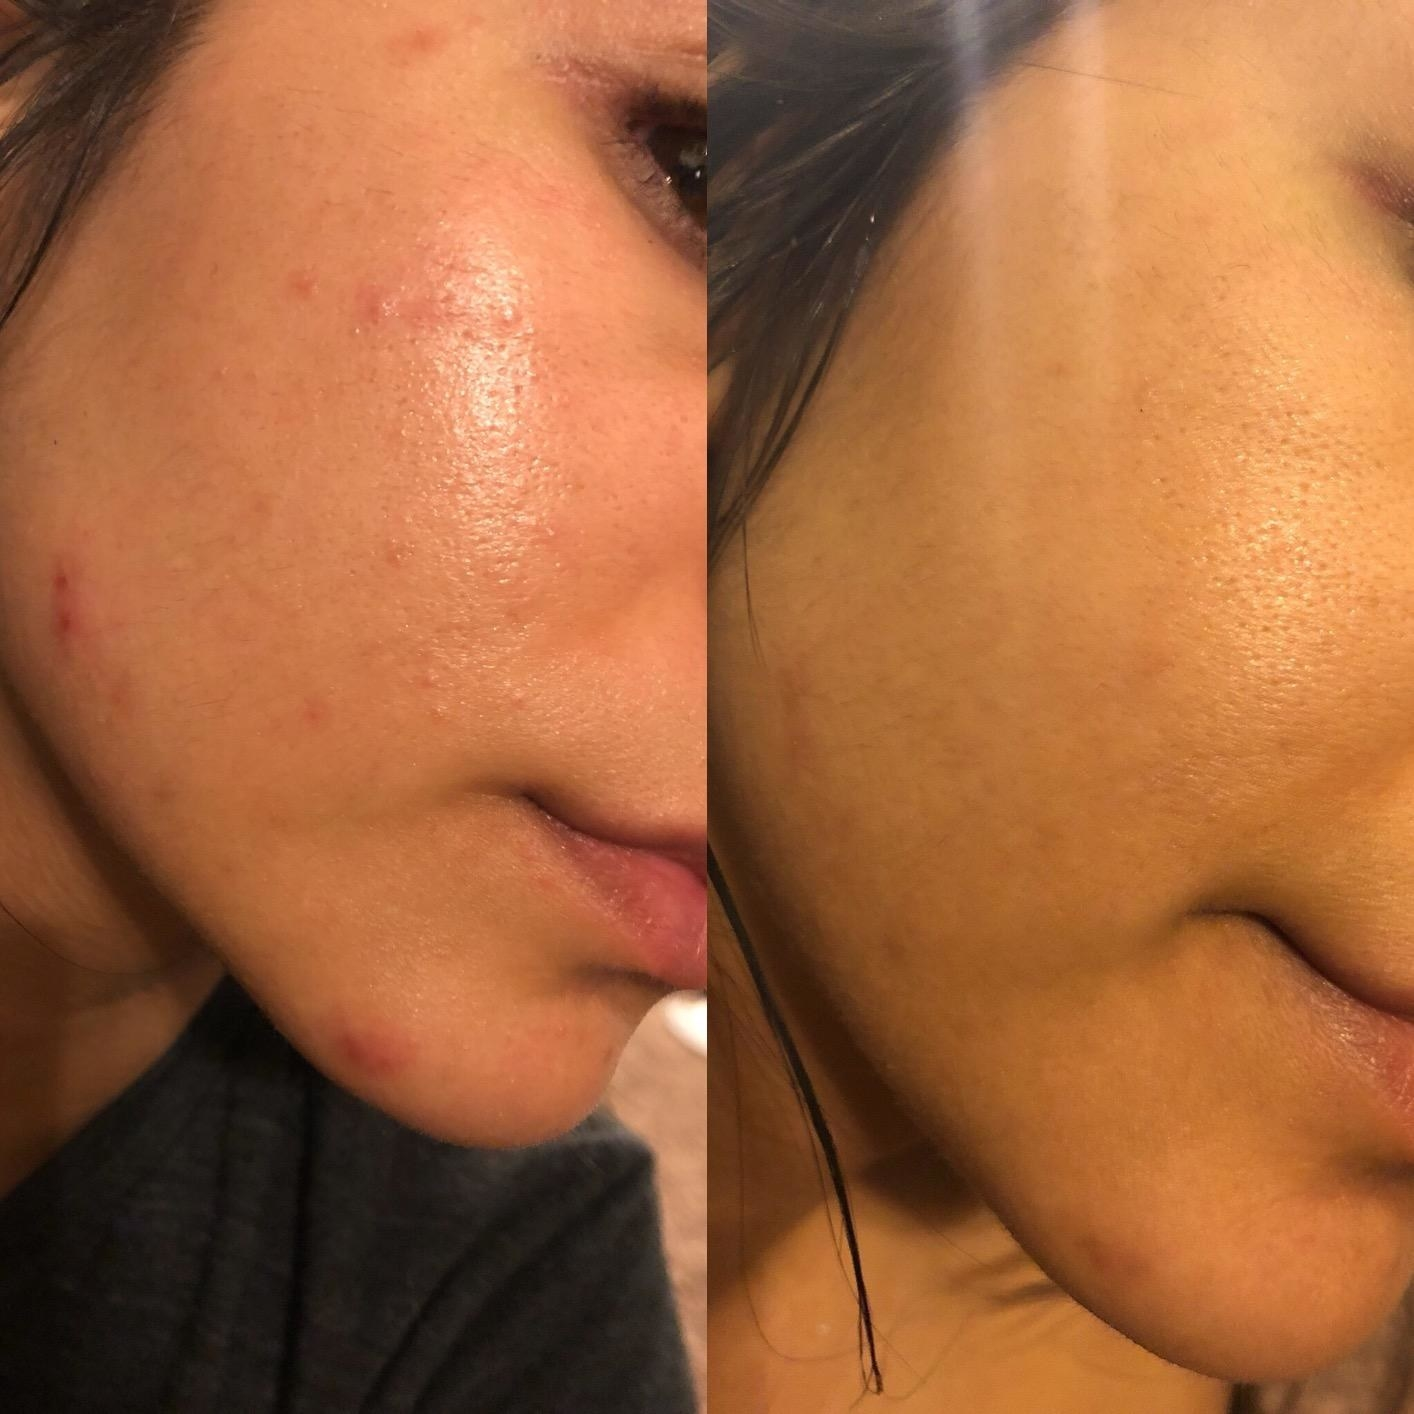 A before shot of a user with red, angry breakouts and an after photo of the same user with almost no breakouts and skin that's much more even toned